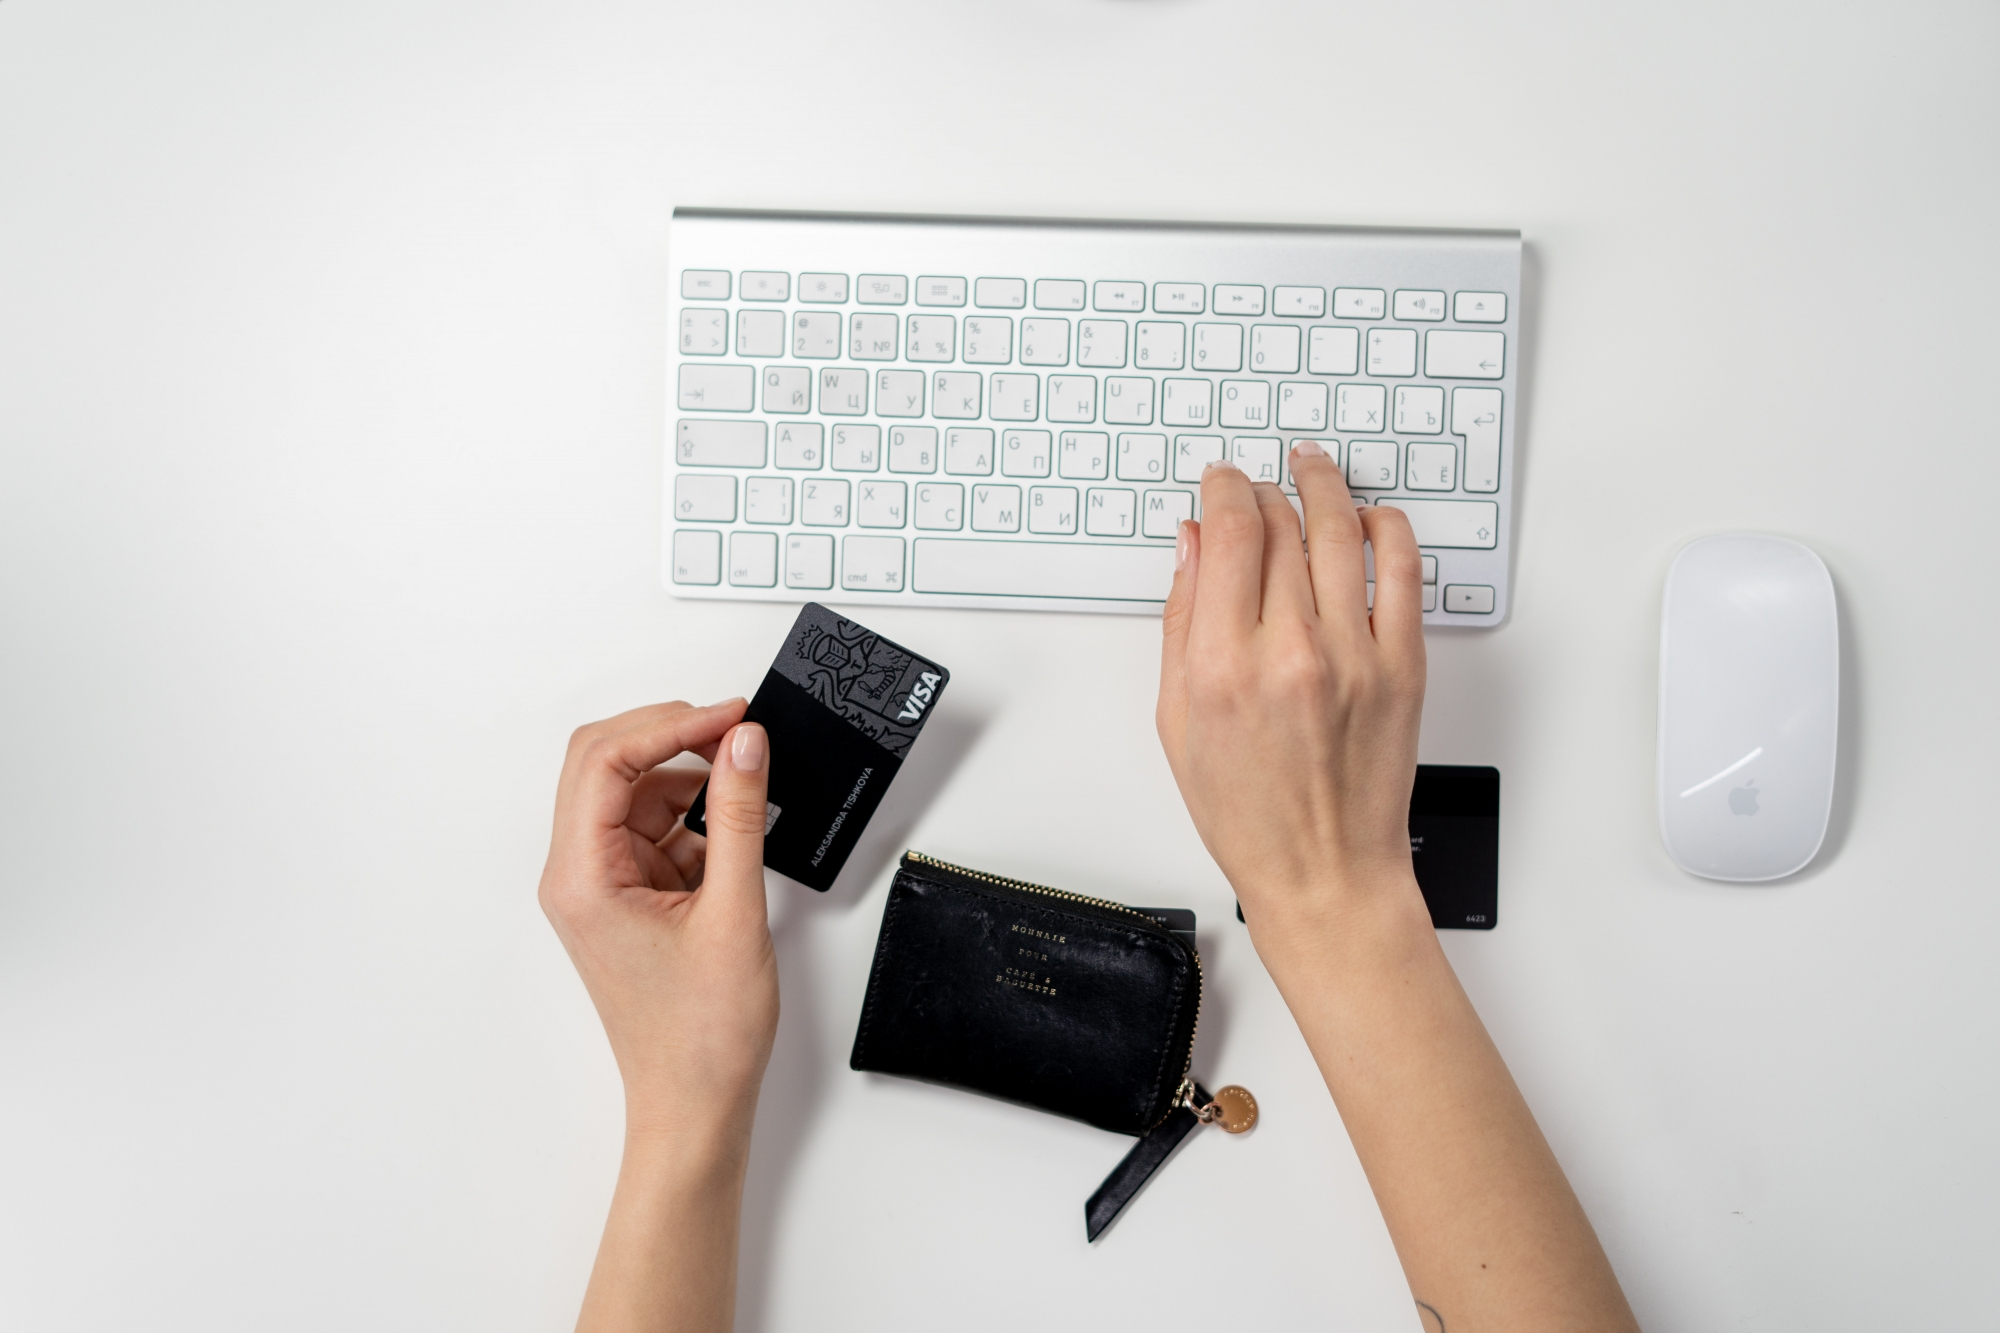 online shoping with credit card in hand